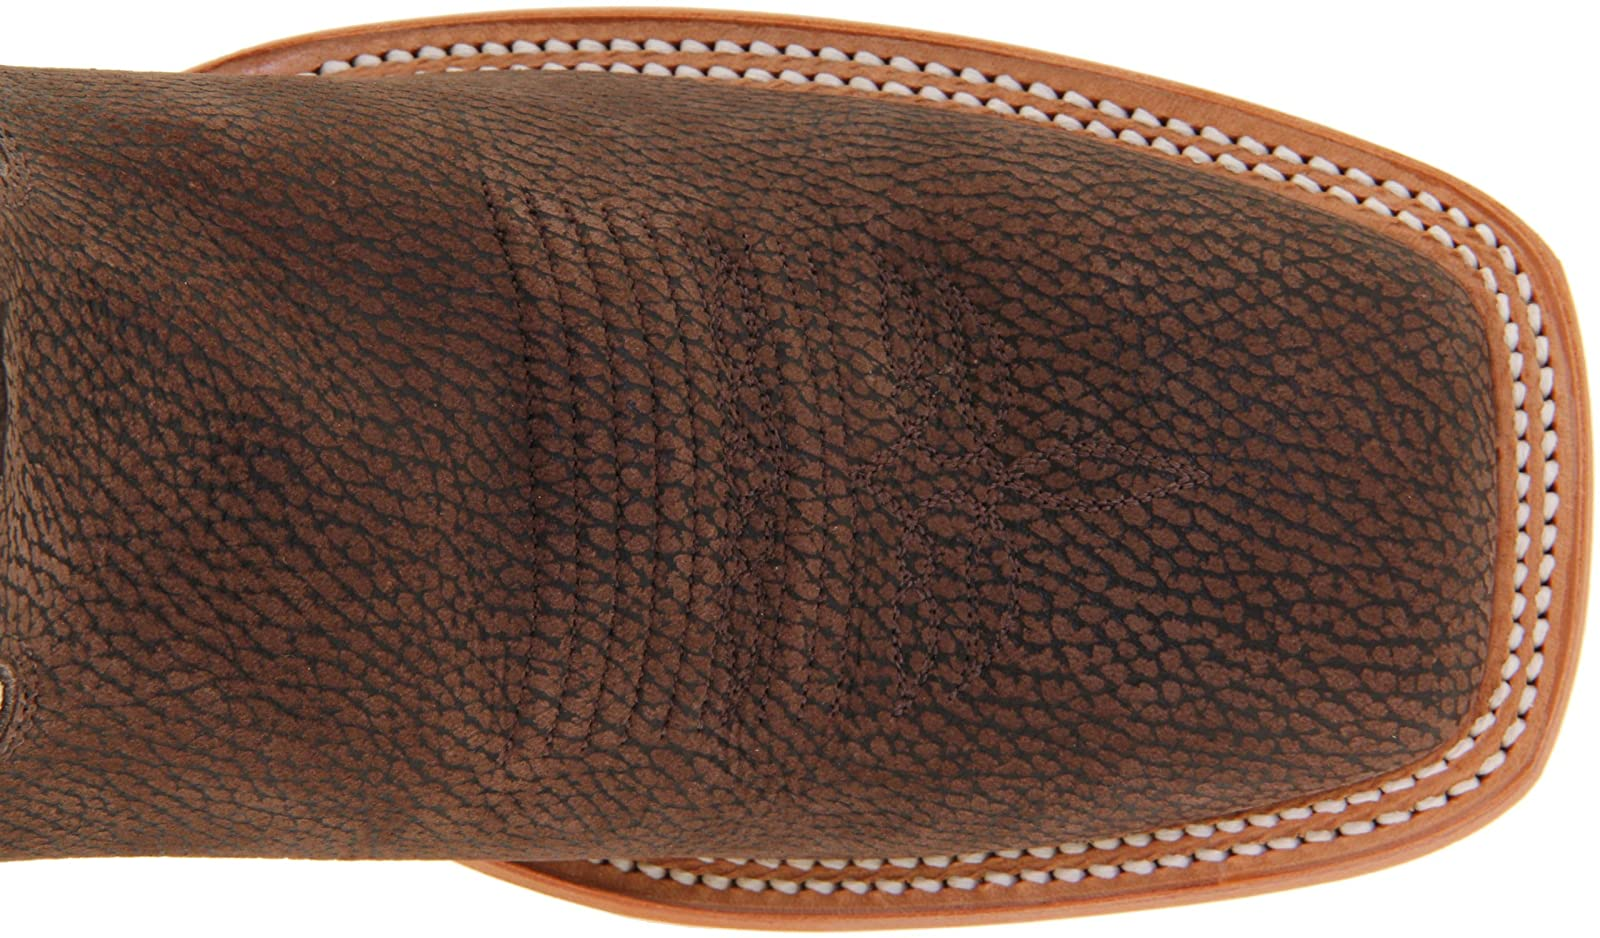 Justin Boots Men's U.S.A. Chocolate Bisonte/White Classic - 7